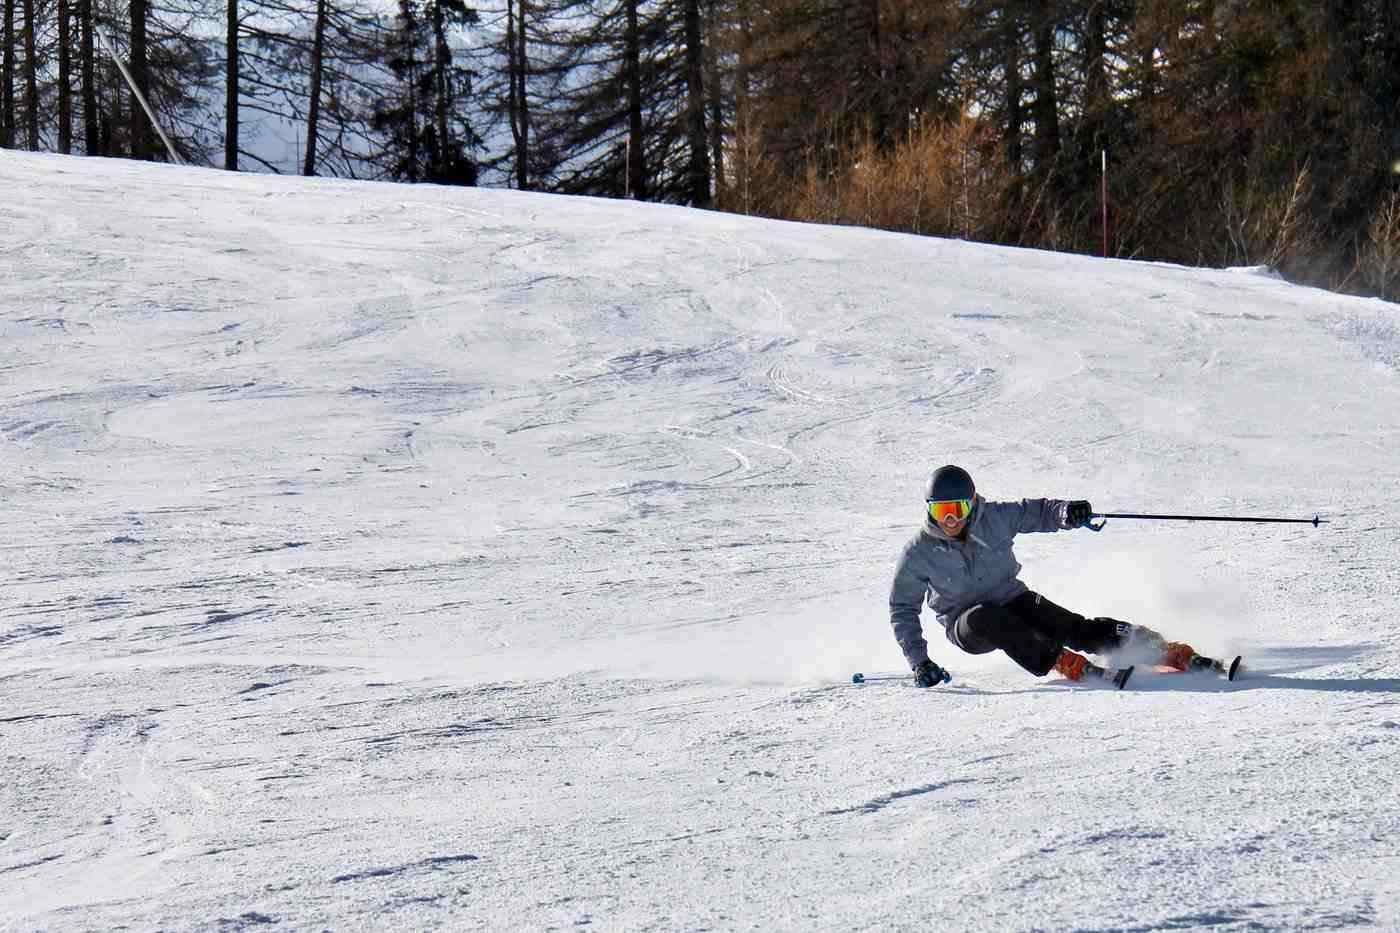 Skiing_Snowboarding - 7 best things to do in Duluth, Minnesota in winter